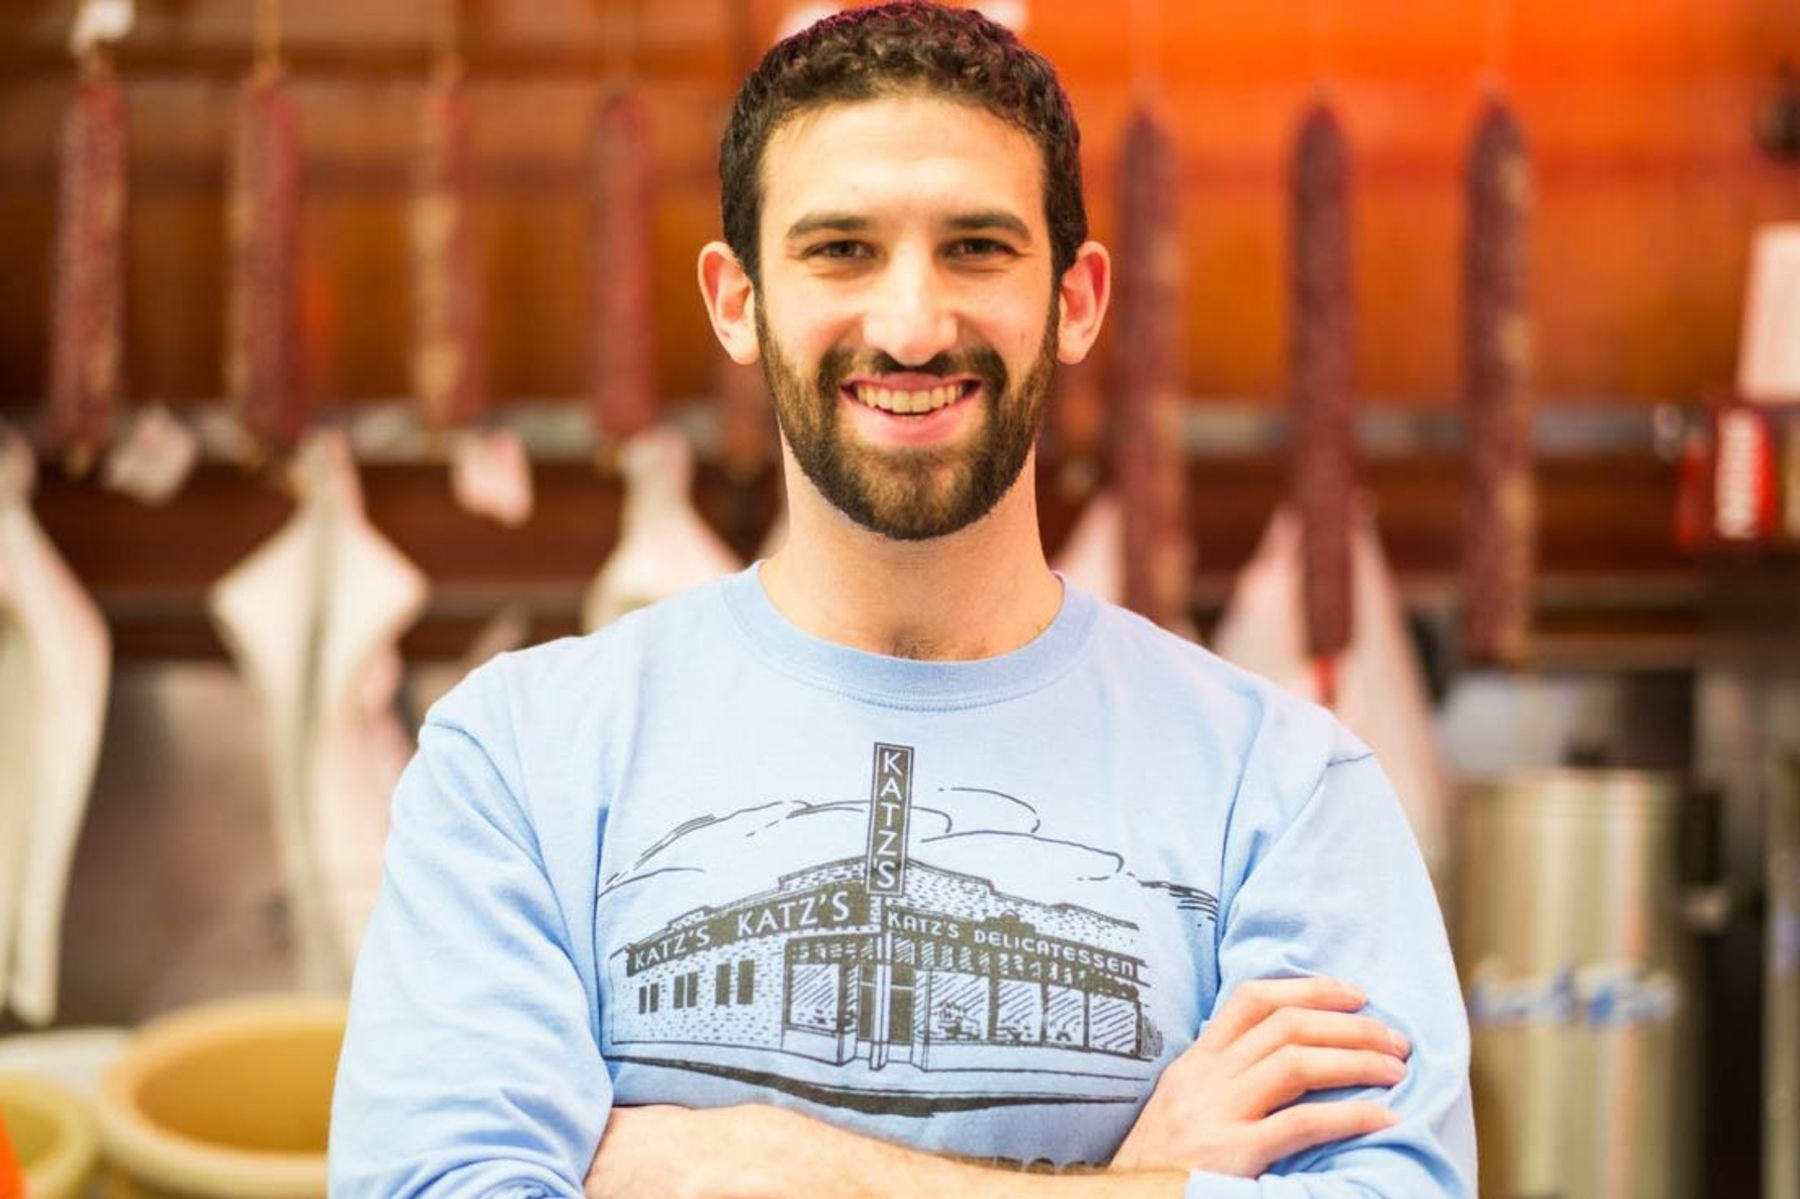 Jake Dell, owner, Katz's Delicatessen. Image: Katz's Deli